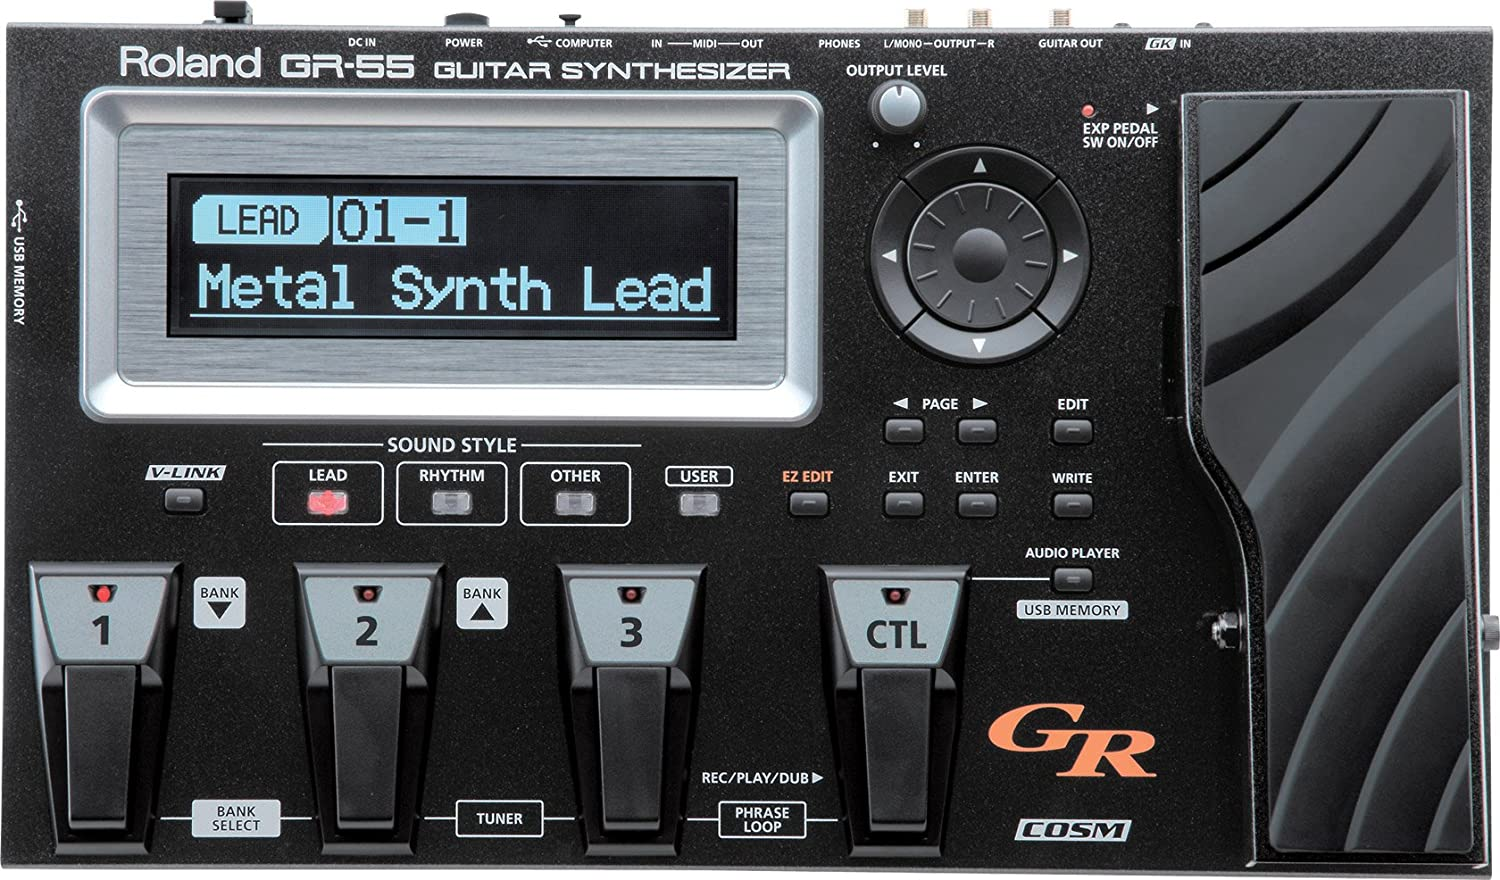 Roland GR-55 Guitar Synth - Black - Without GK-3 Pickup